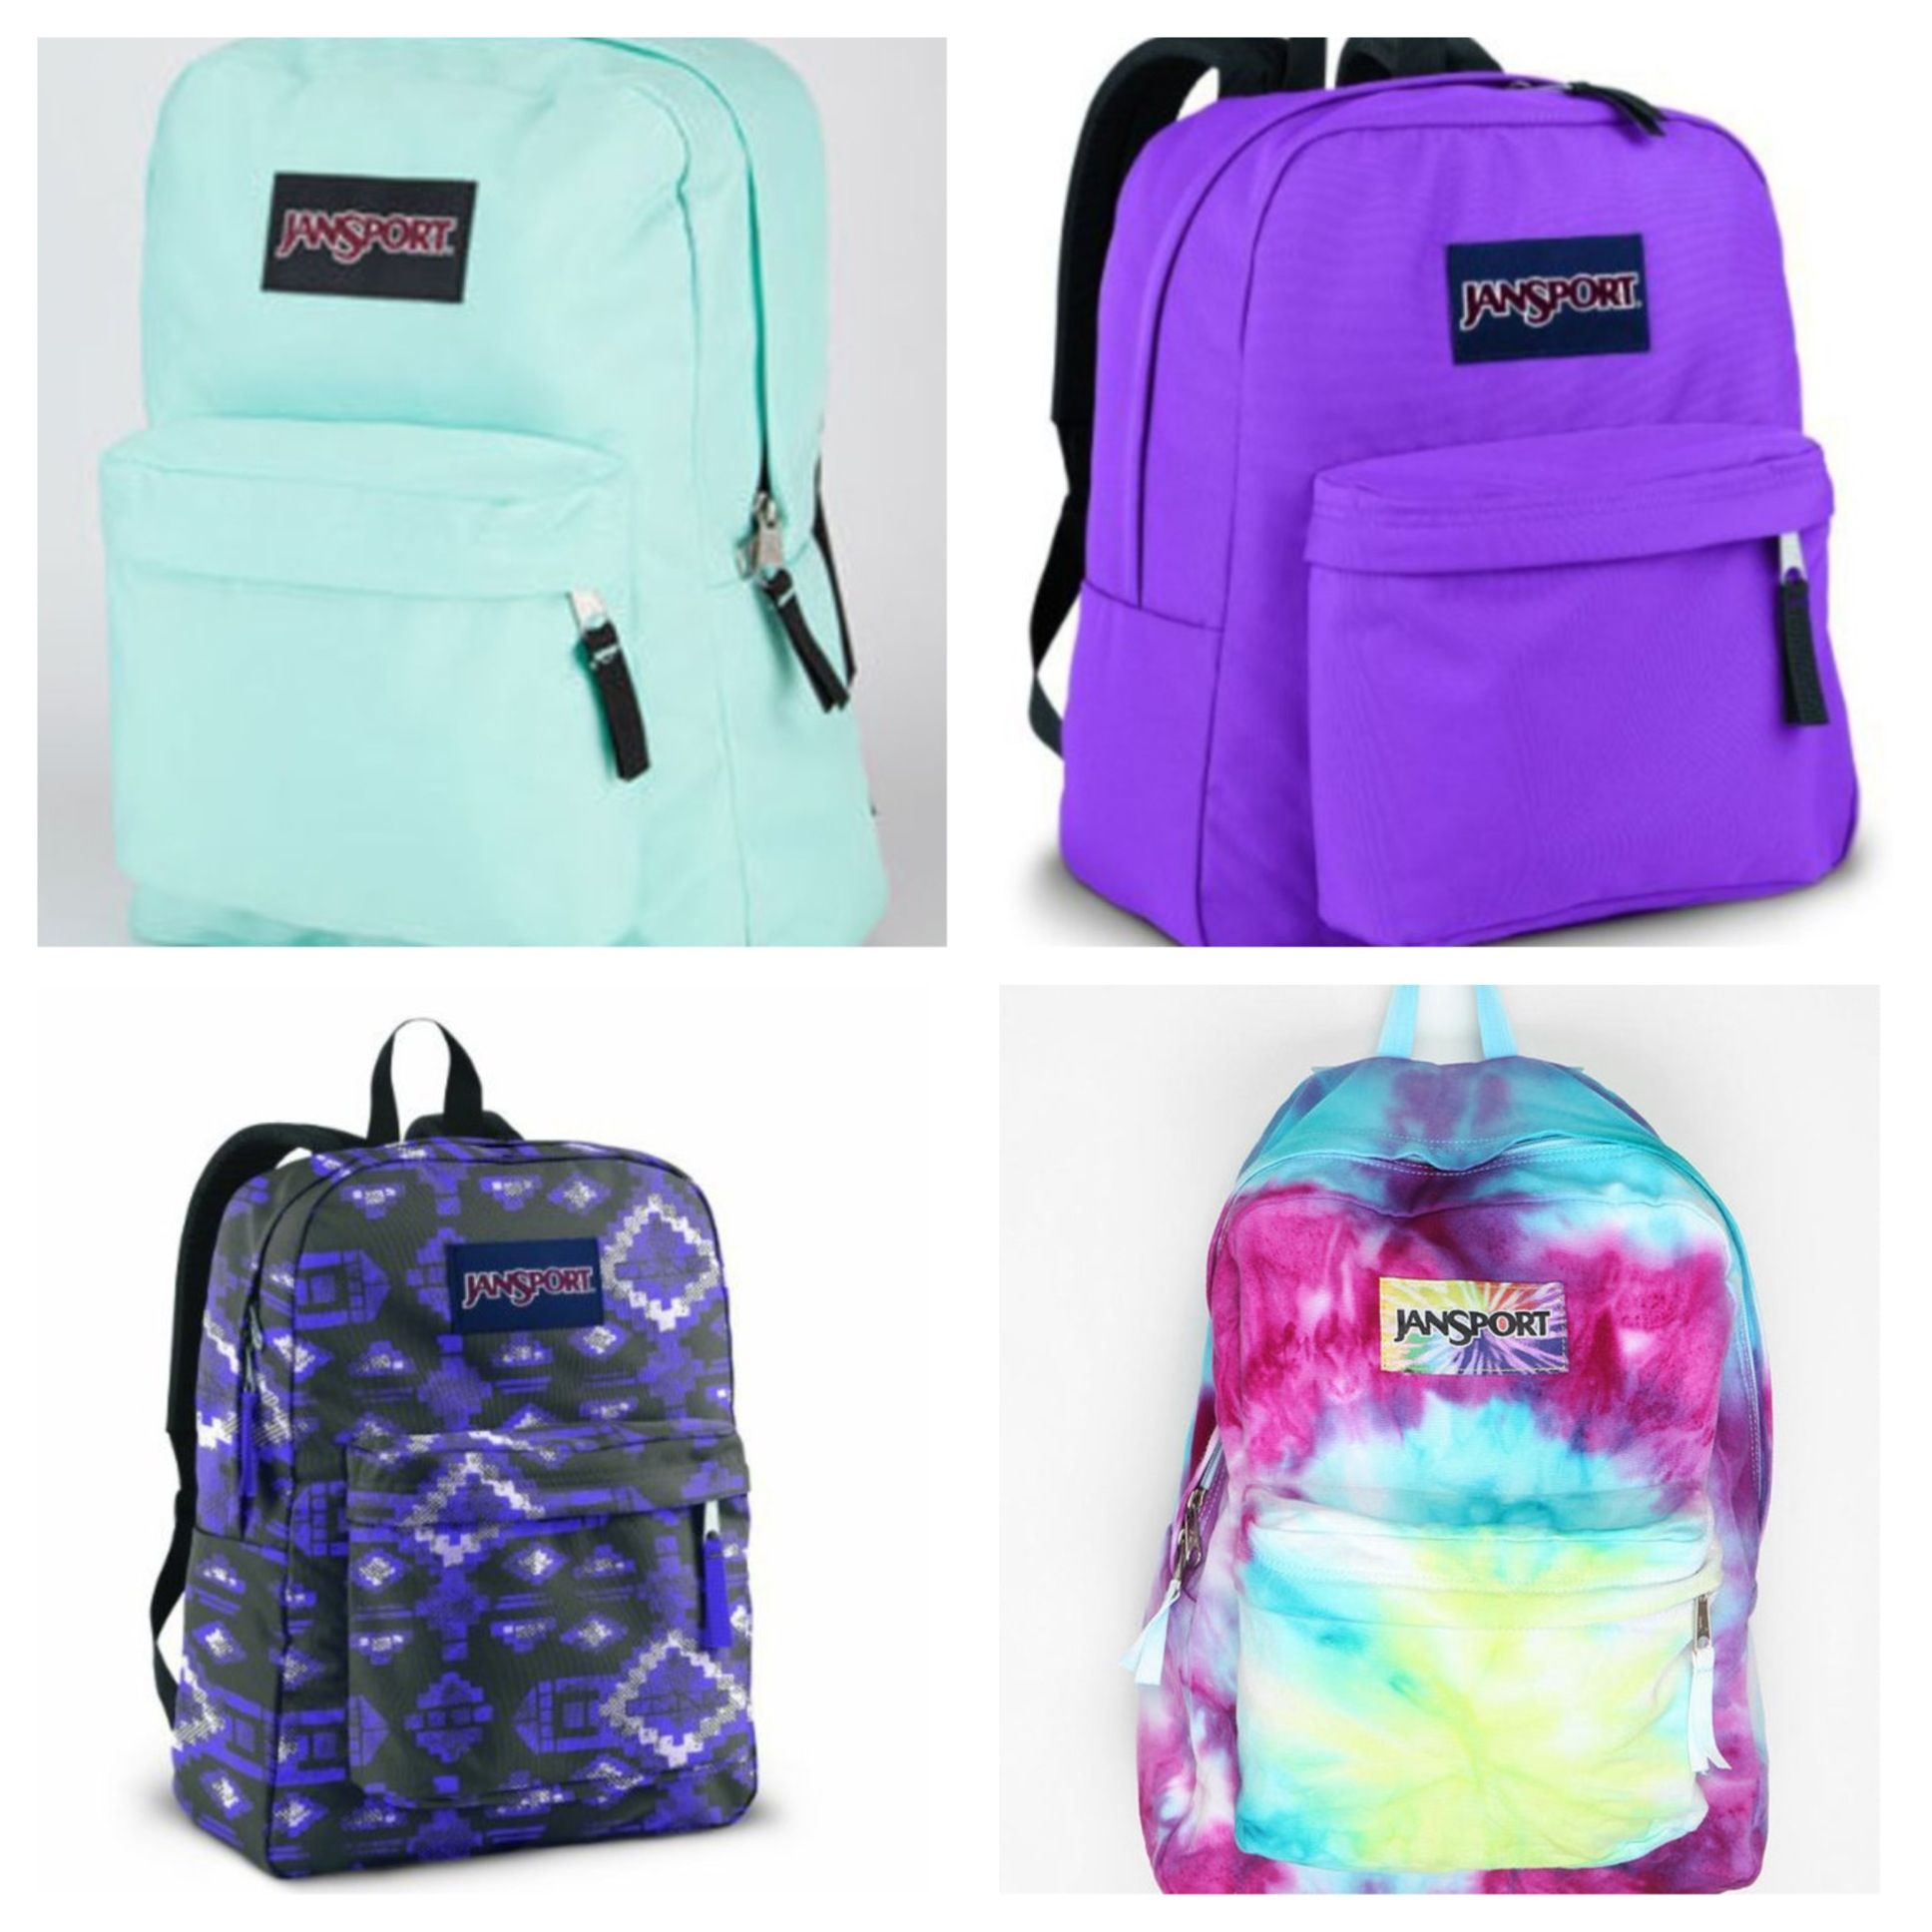 Jansport backpacks | Love this! | Pinterest